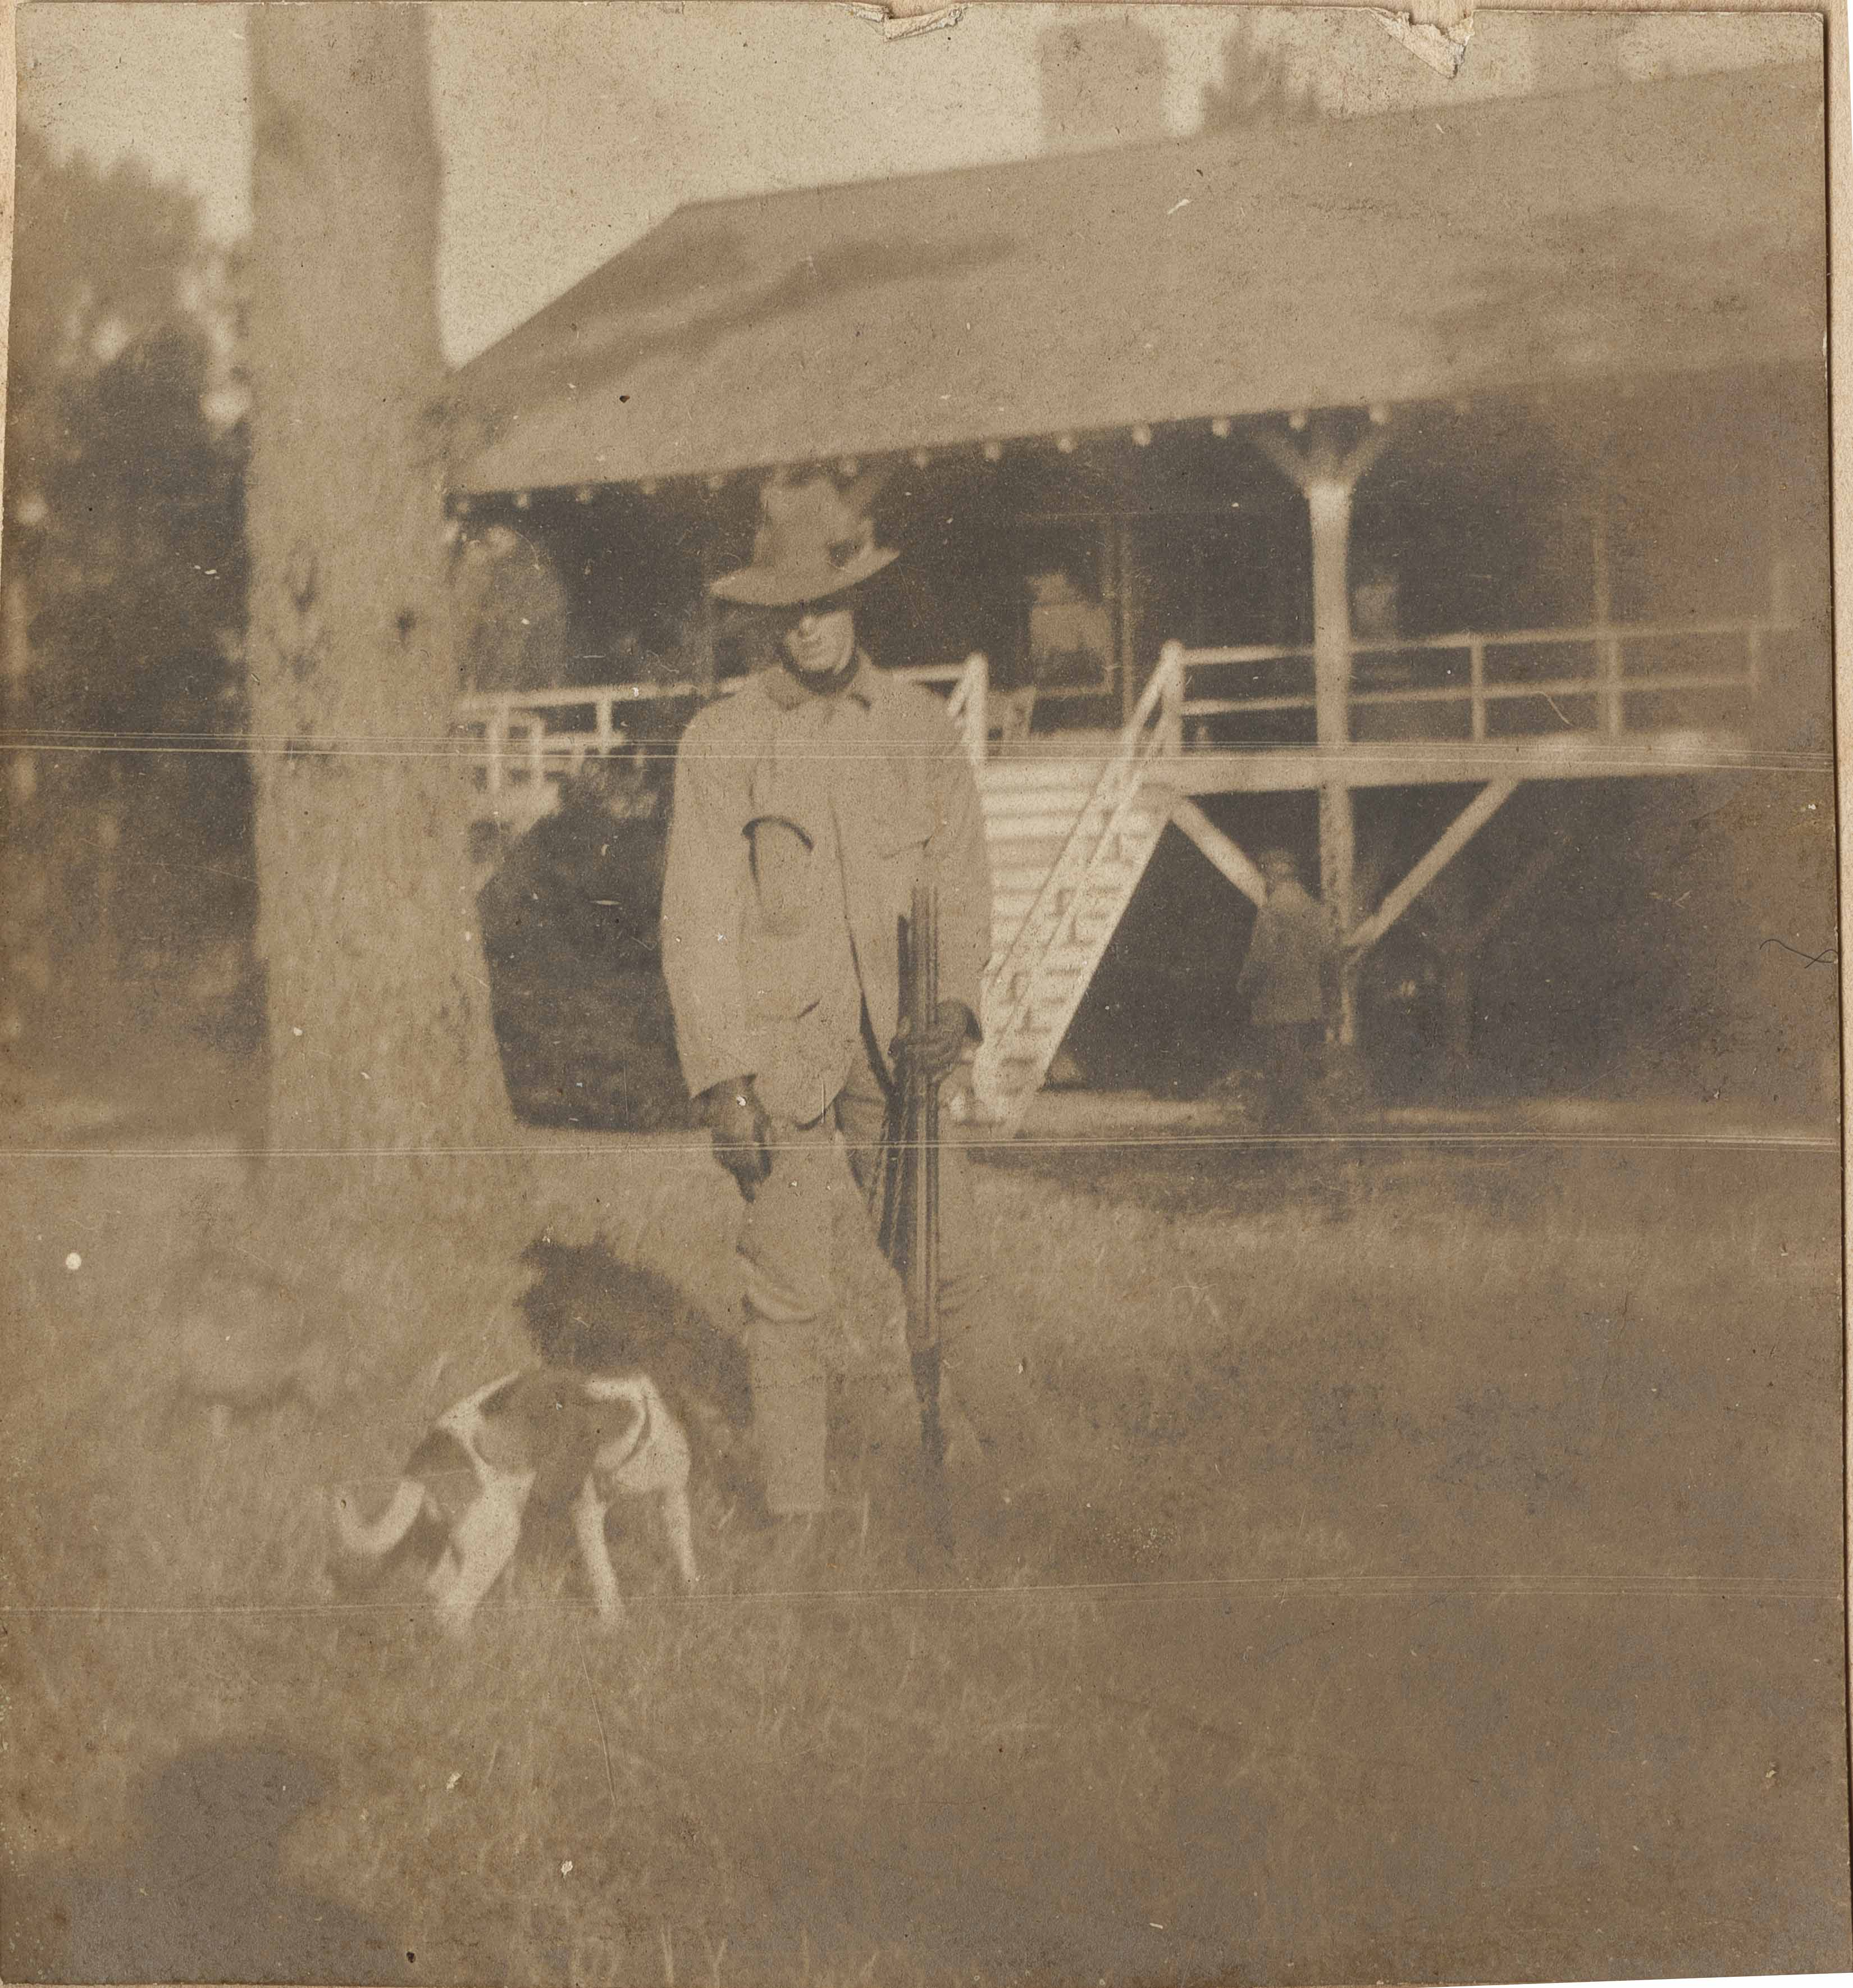 Pauline Donner with gun and dog in front of Main house